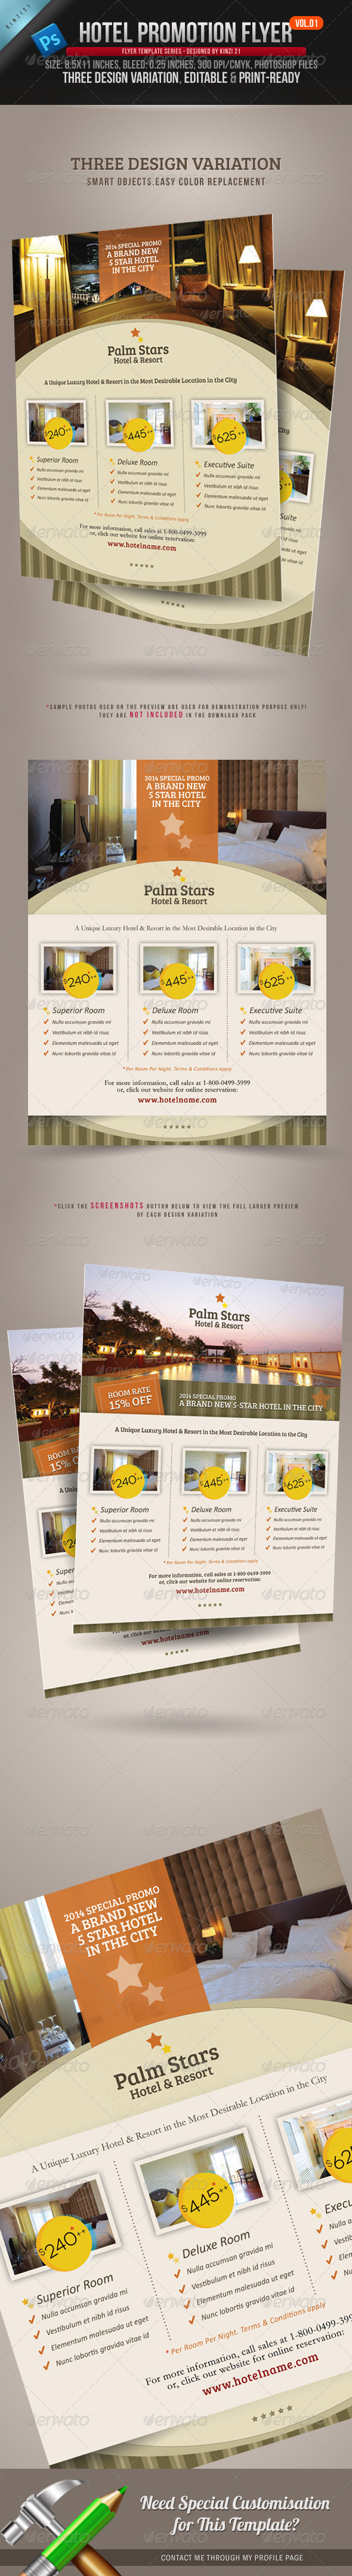 Hotel Promotion Flyer Vol.01 - Corporate Flyers